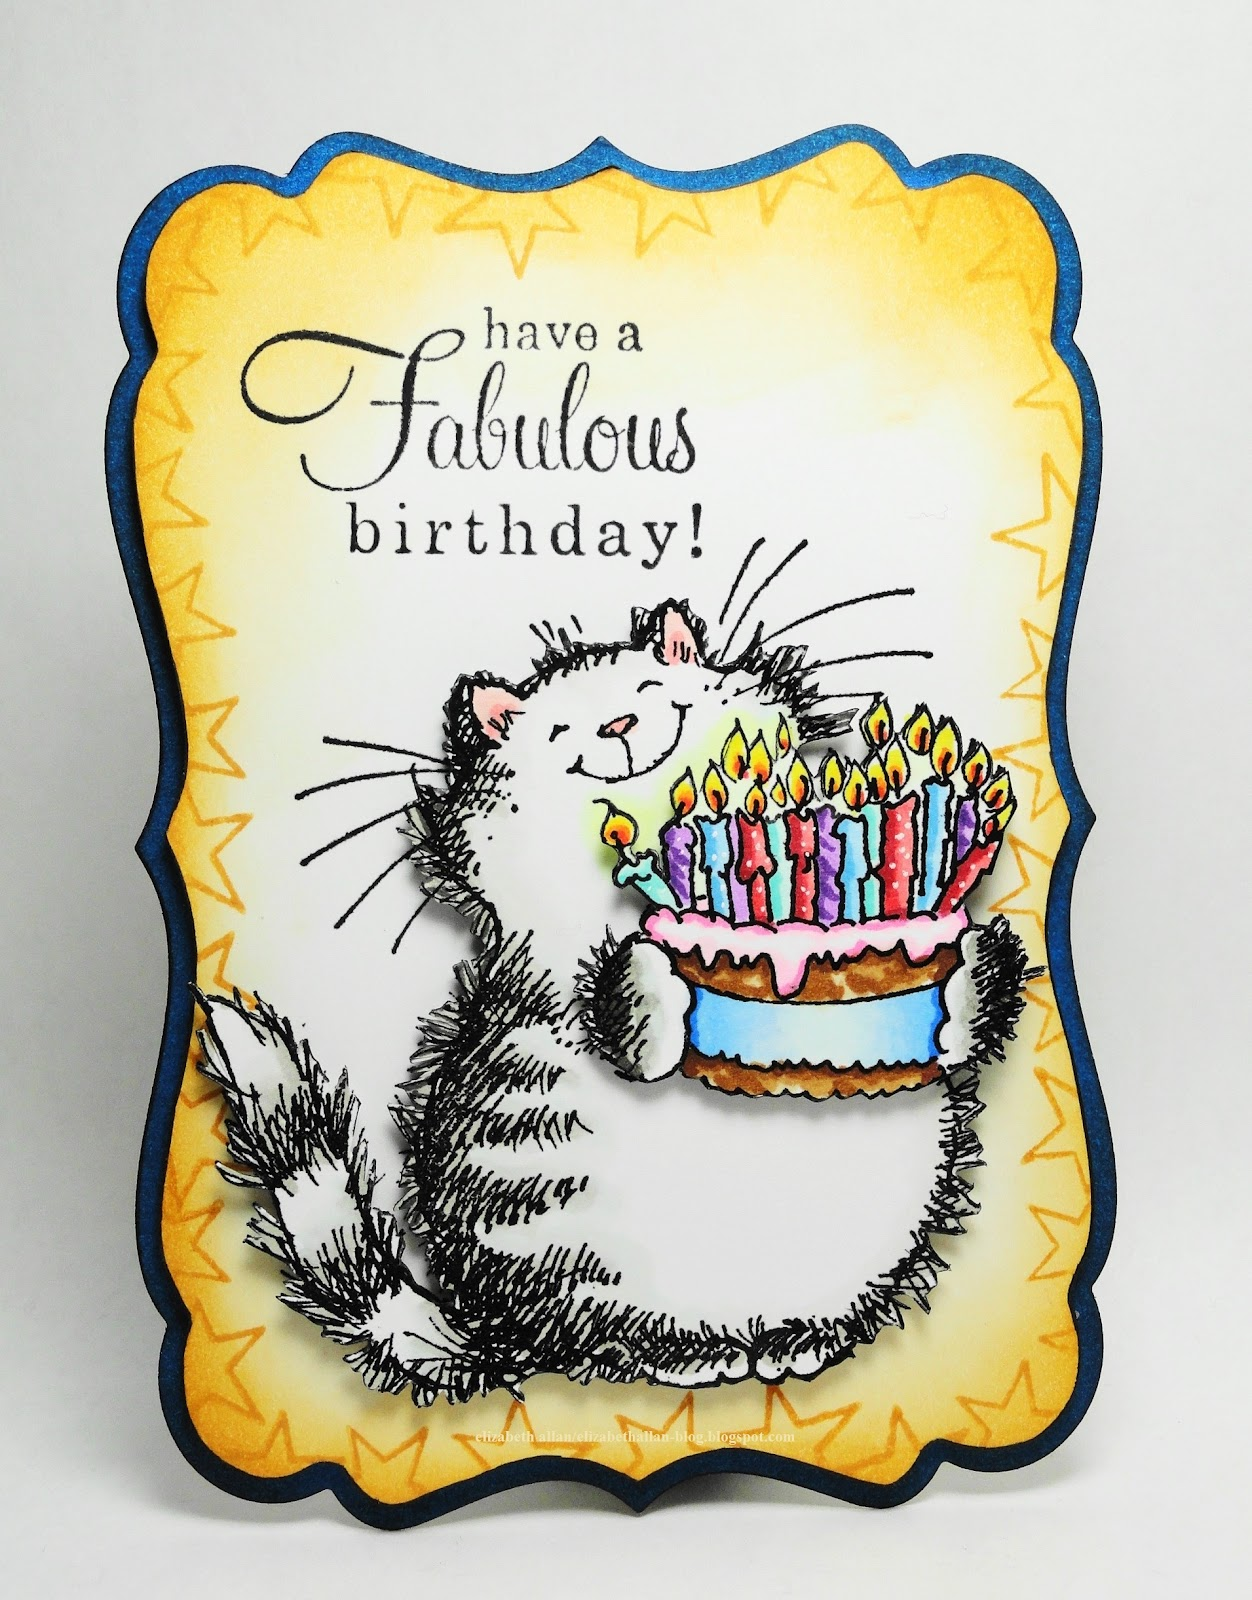 She Is A Cat Lover And I Thought Would Enjoy Seeing This Post With The Birthday Wishes Created For Penny Black Full Of Surprises Catalog